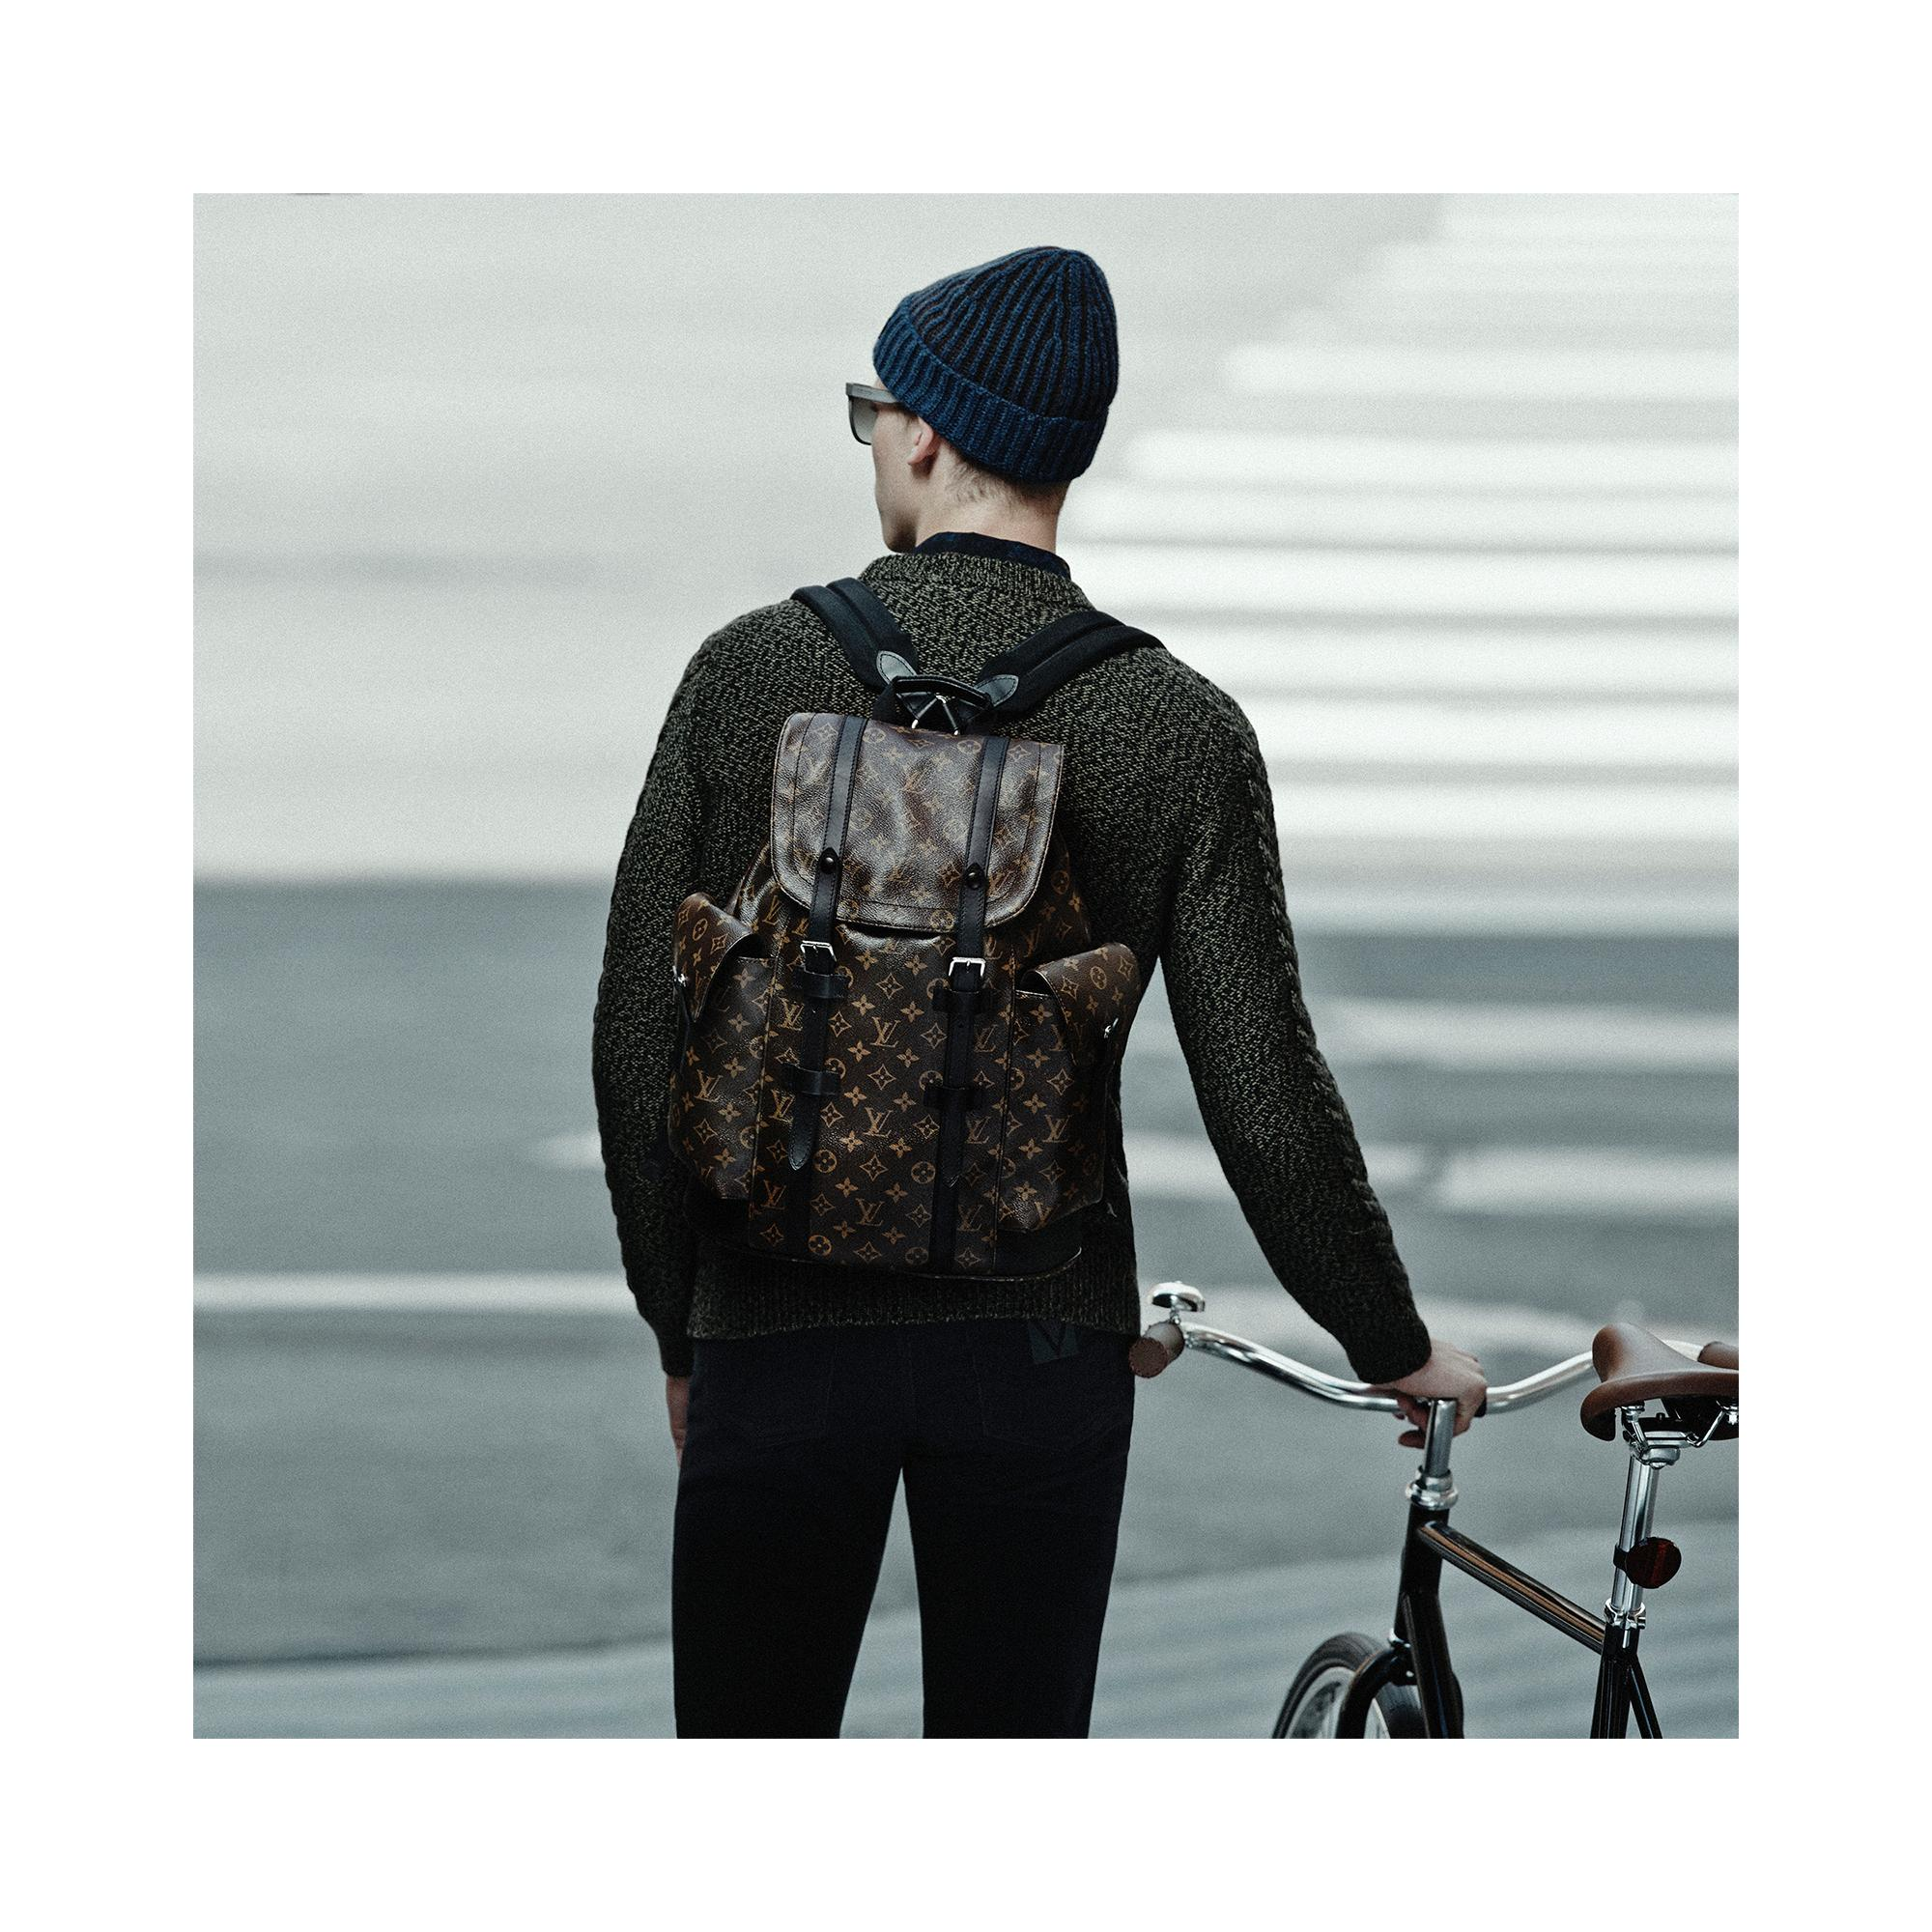 Christopher PM  Canvas Monogram Macassar in HOMEM's VIAGEM  collections by Louis Vuitton